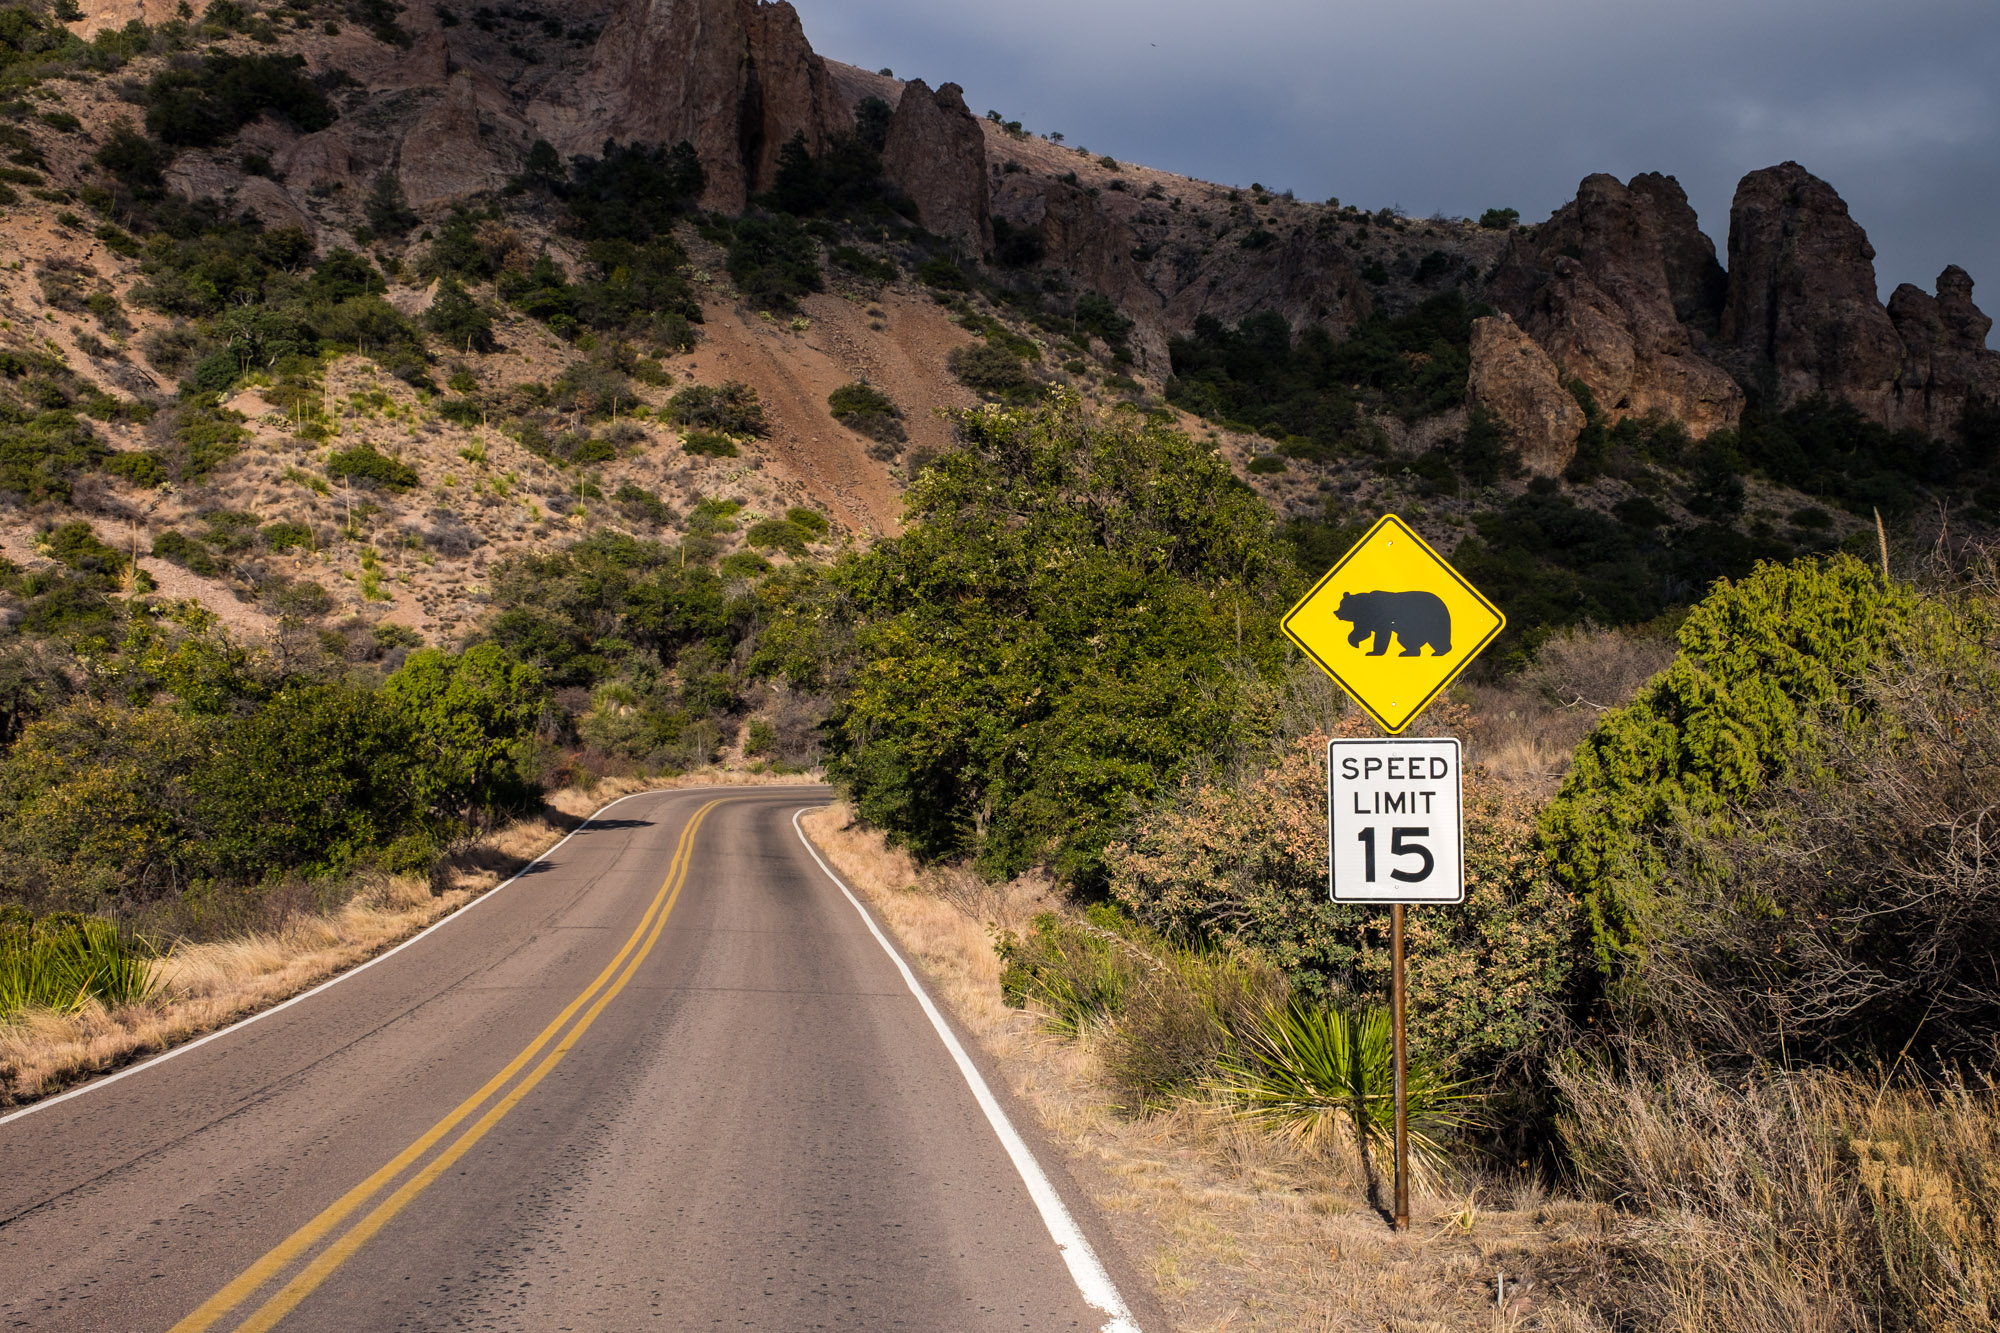 A drive up to the Chisos Basin is a must, and a great place to spot wildlife (including black bear and mountain lion).